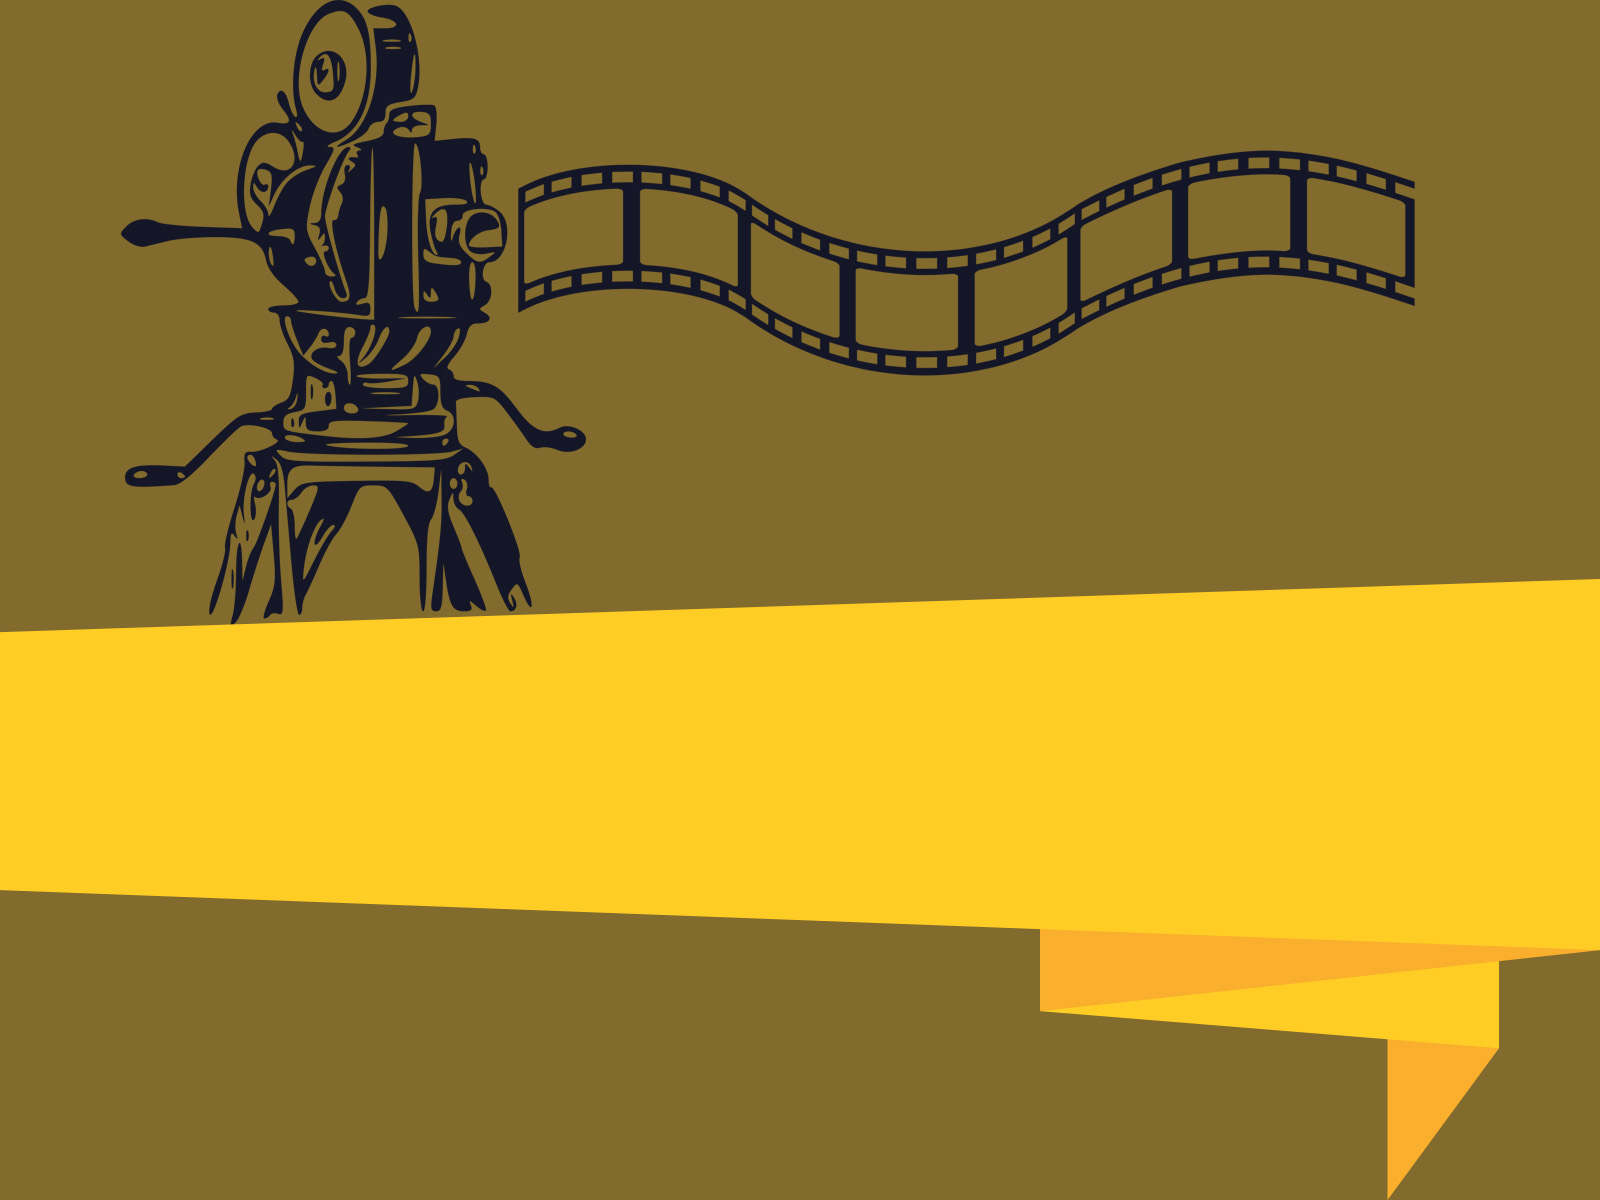 film strip backgrounds black brown movie amp tv yellow